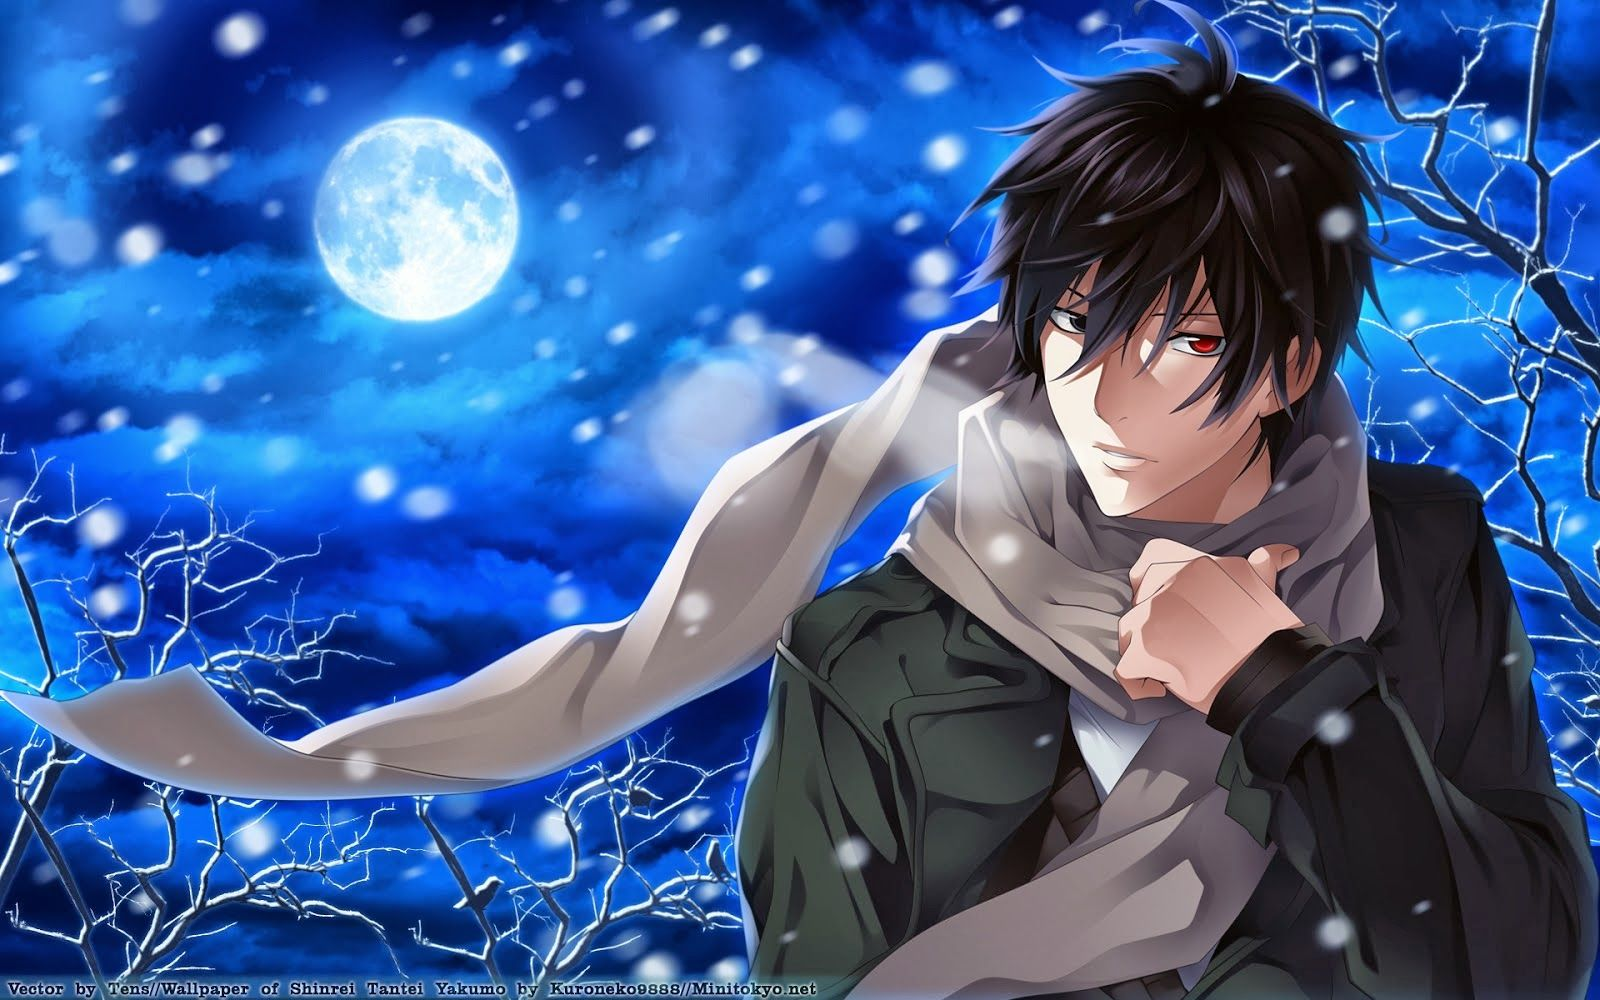 Anime Boy Wallpapers Hd Anime Boy Anime Anime Wallpaper